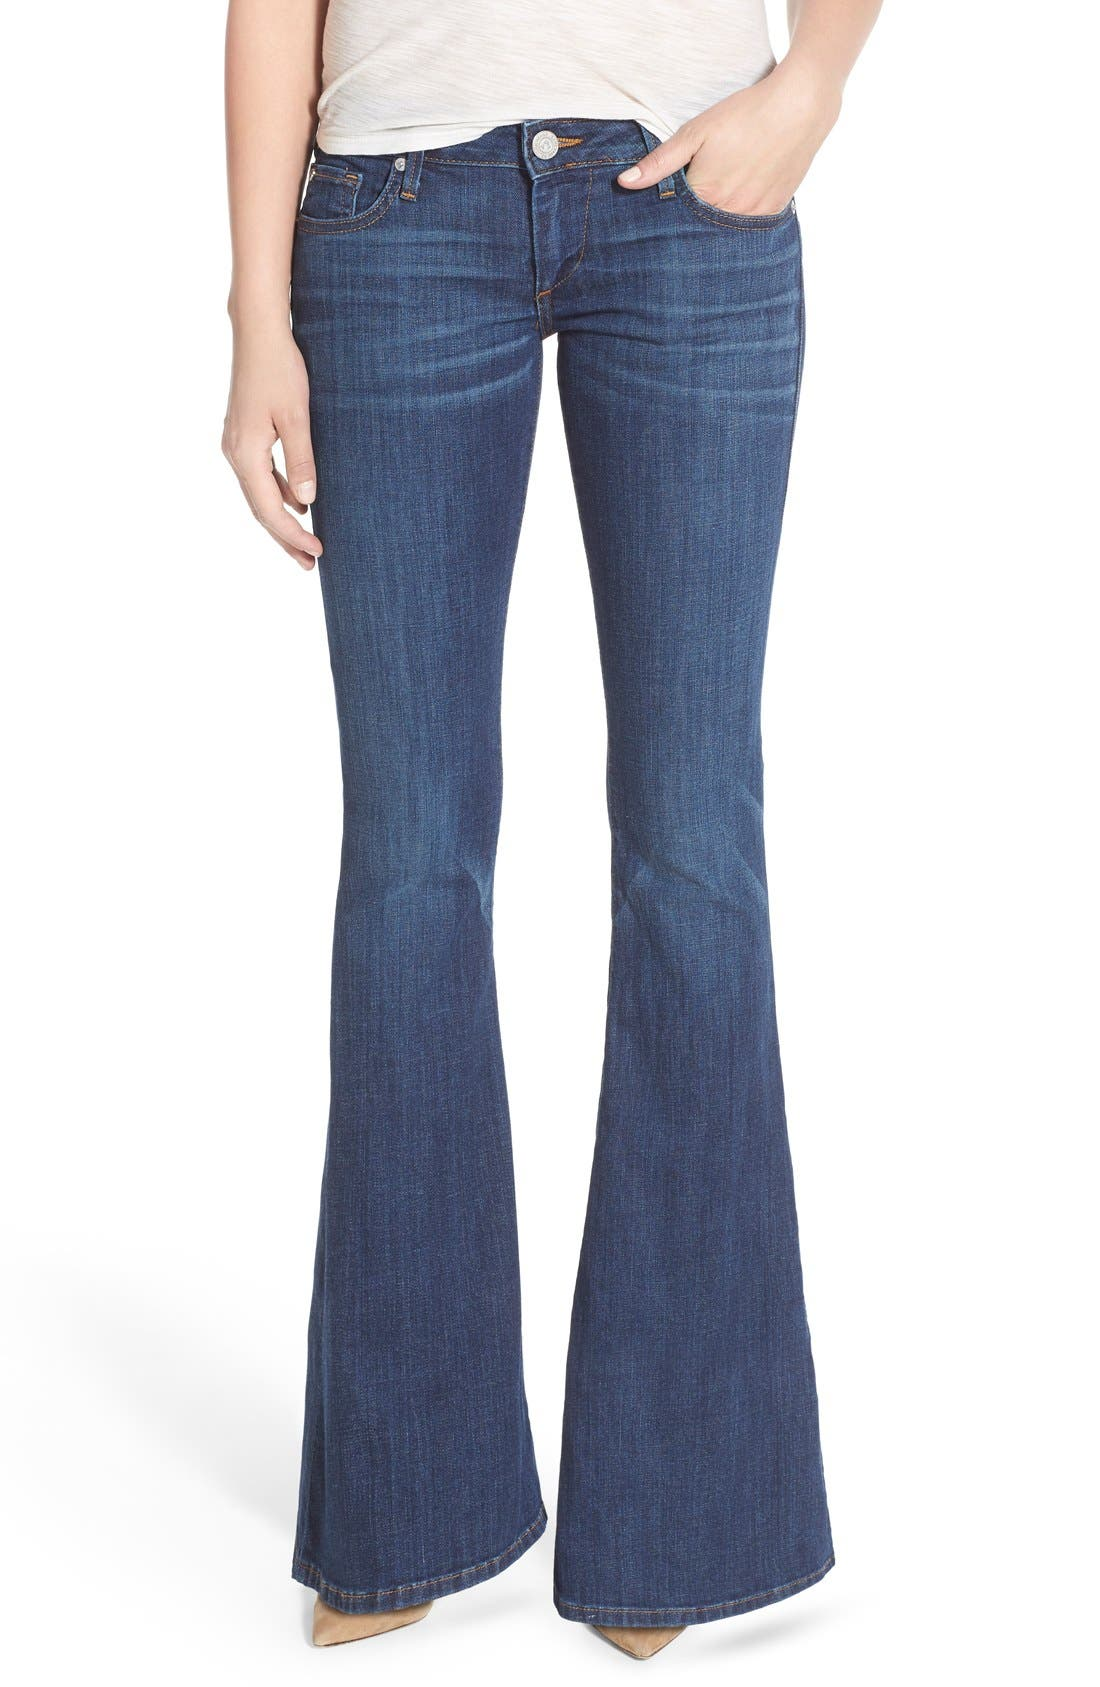 Alternate Image 1 Selected - True Religion Brand Jeans 'Karlie' Bell Bottom Jeans (Worn Vintage)